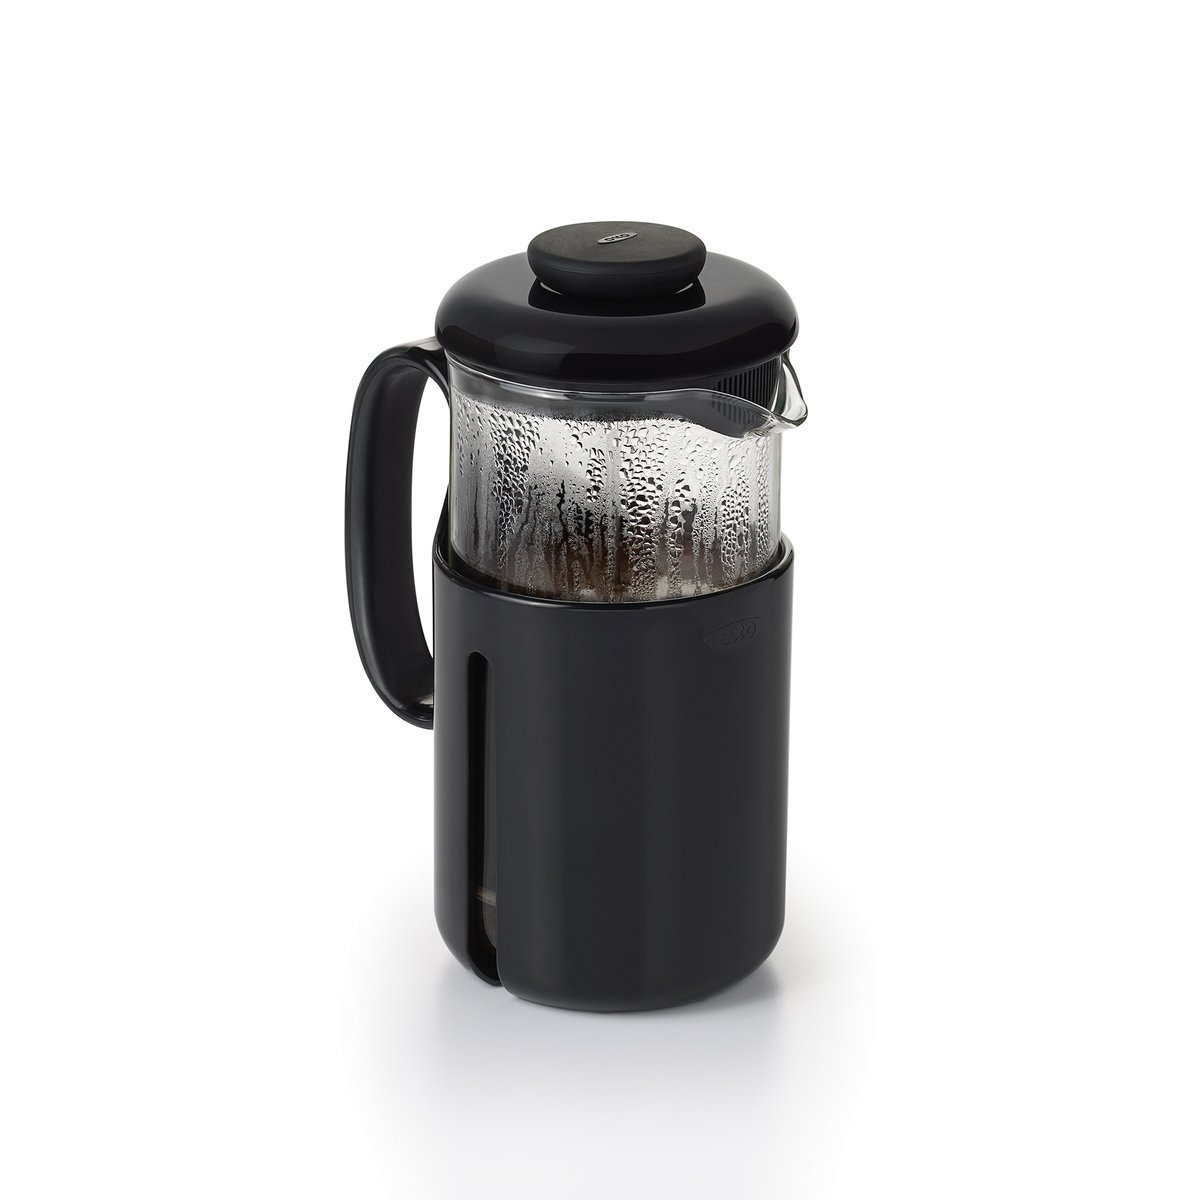 OXO Good Grips Venture Travel French Press with Shatterproof Tritan Carafe, 32 Ounce (8 Cups) by OXO (Image #5)